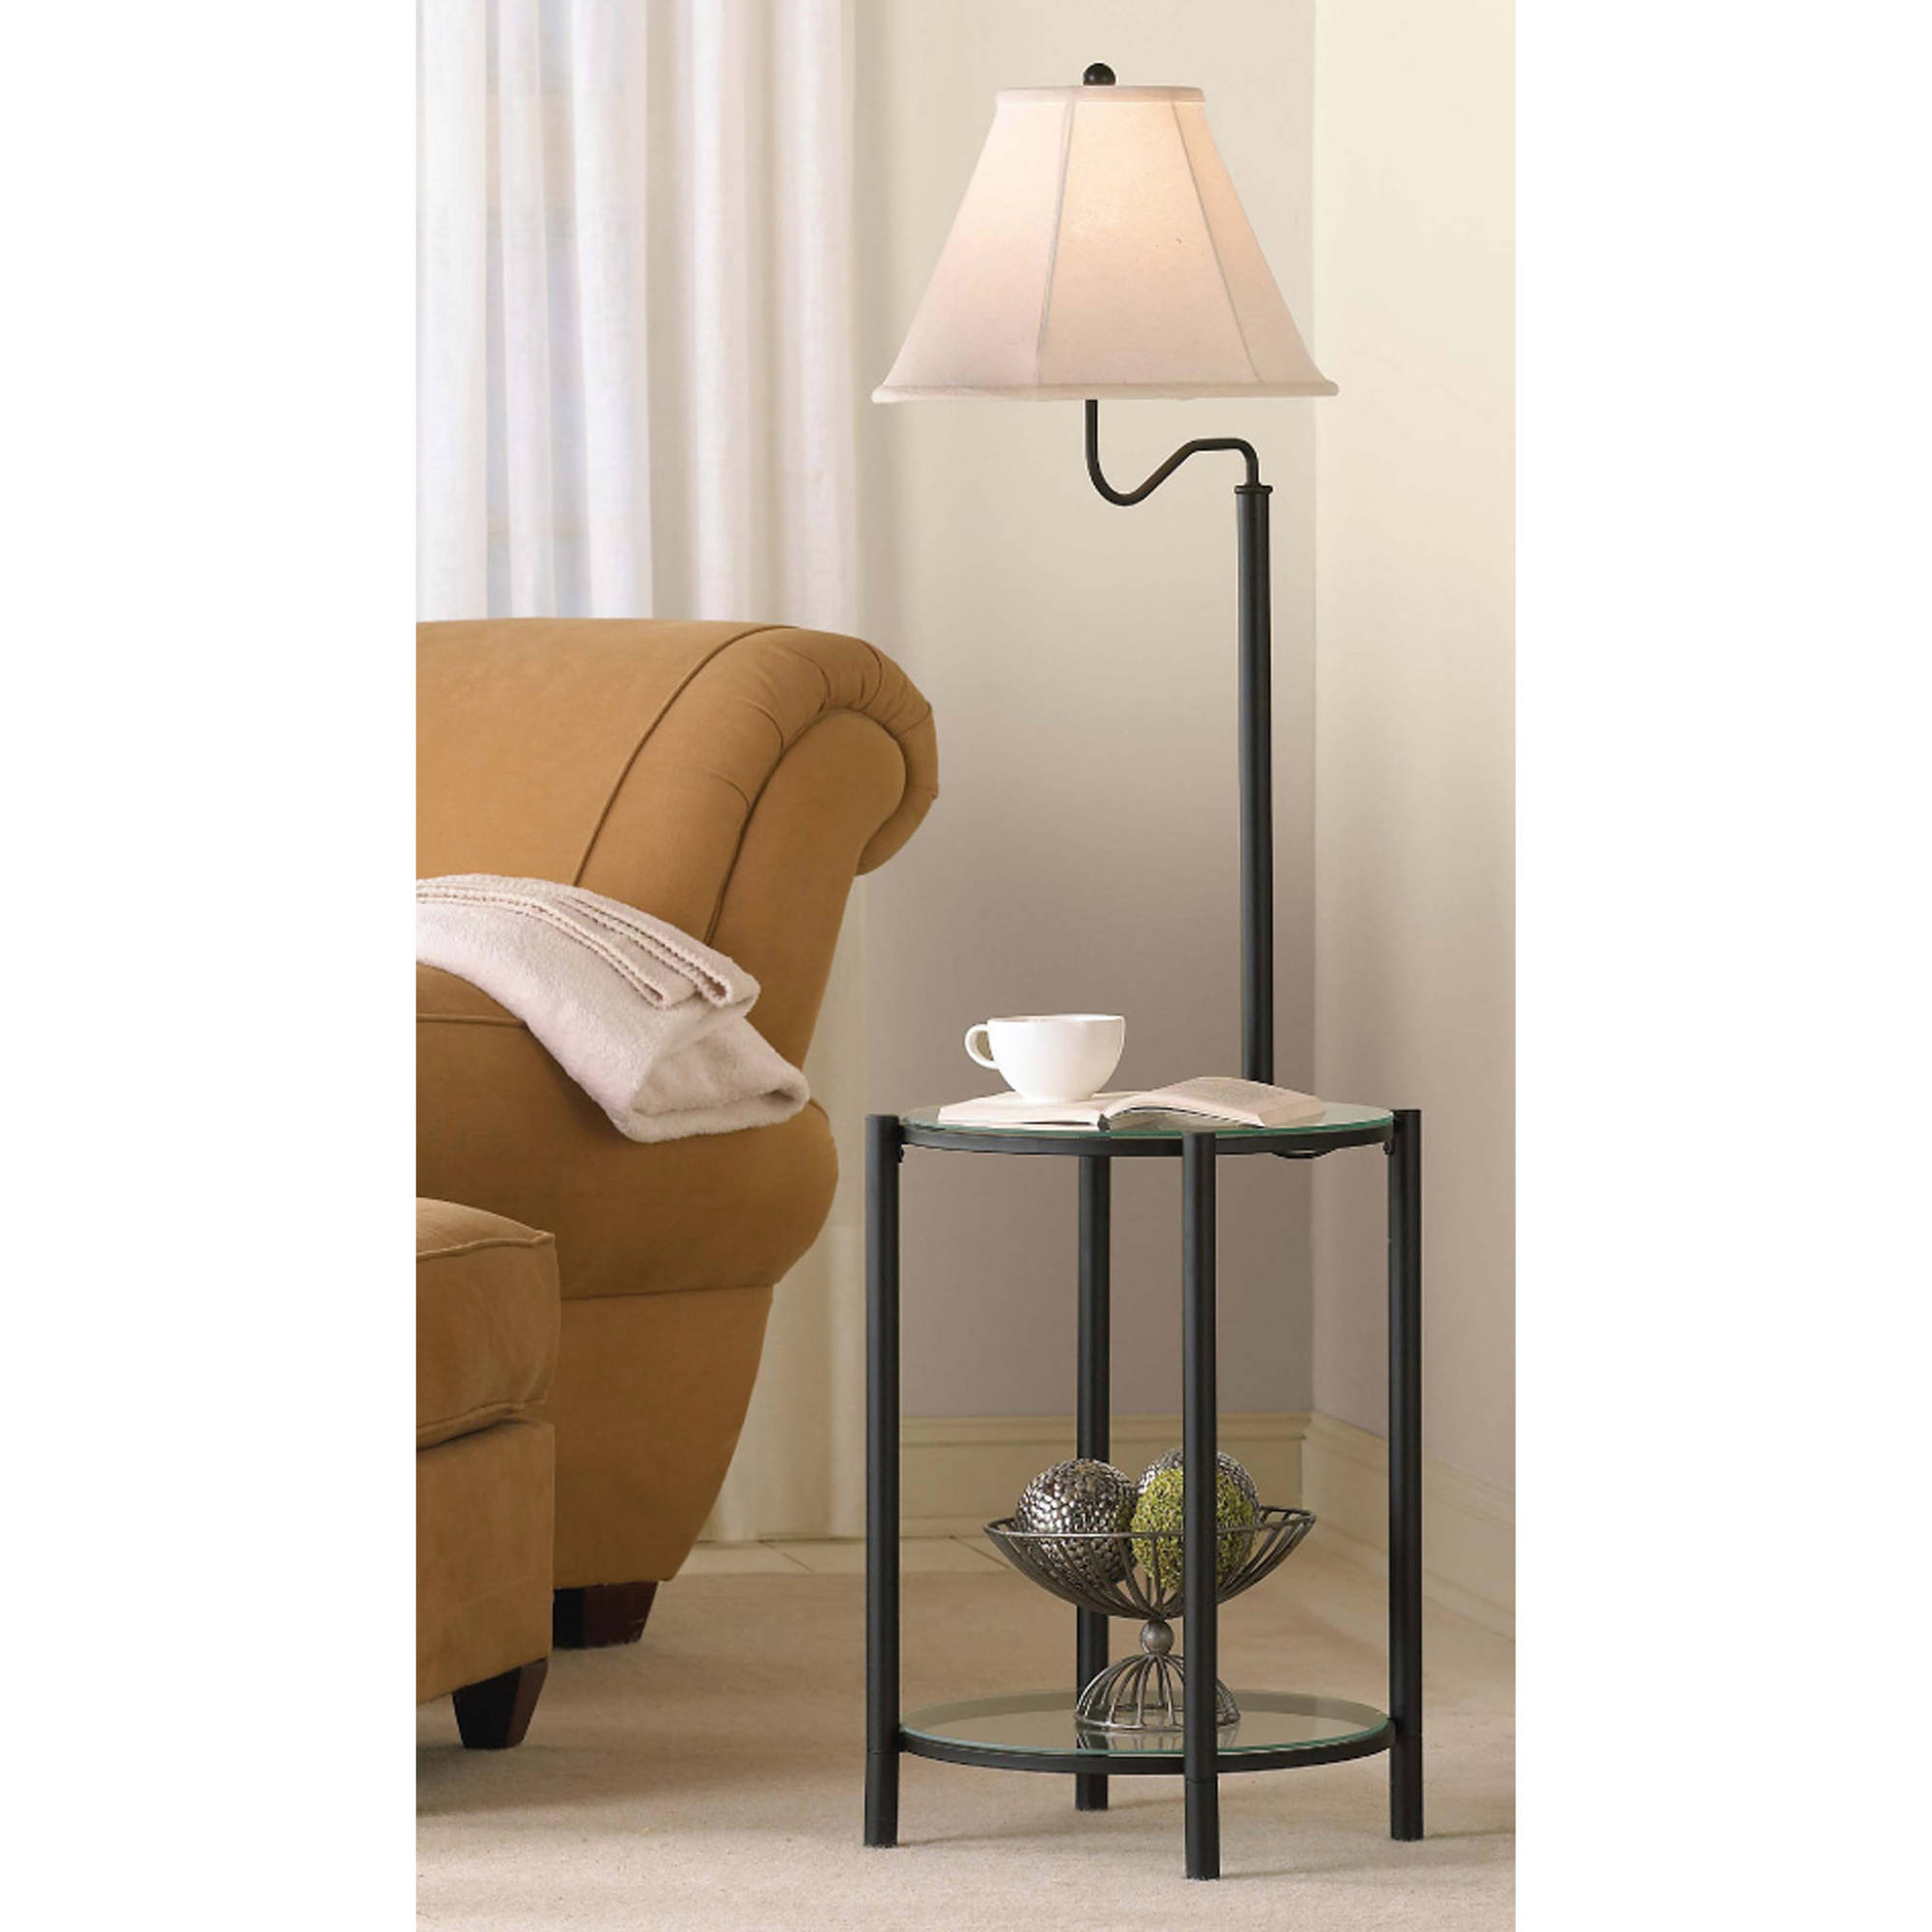 battery operated table lamps green lamp white tall for living room inside small accent martin home furnishings pretty round tablecloths black base leather occasional chair outdoor